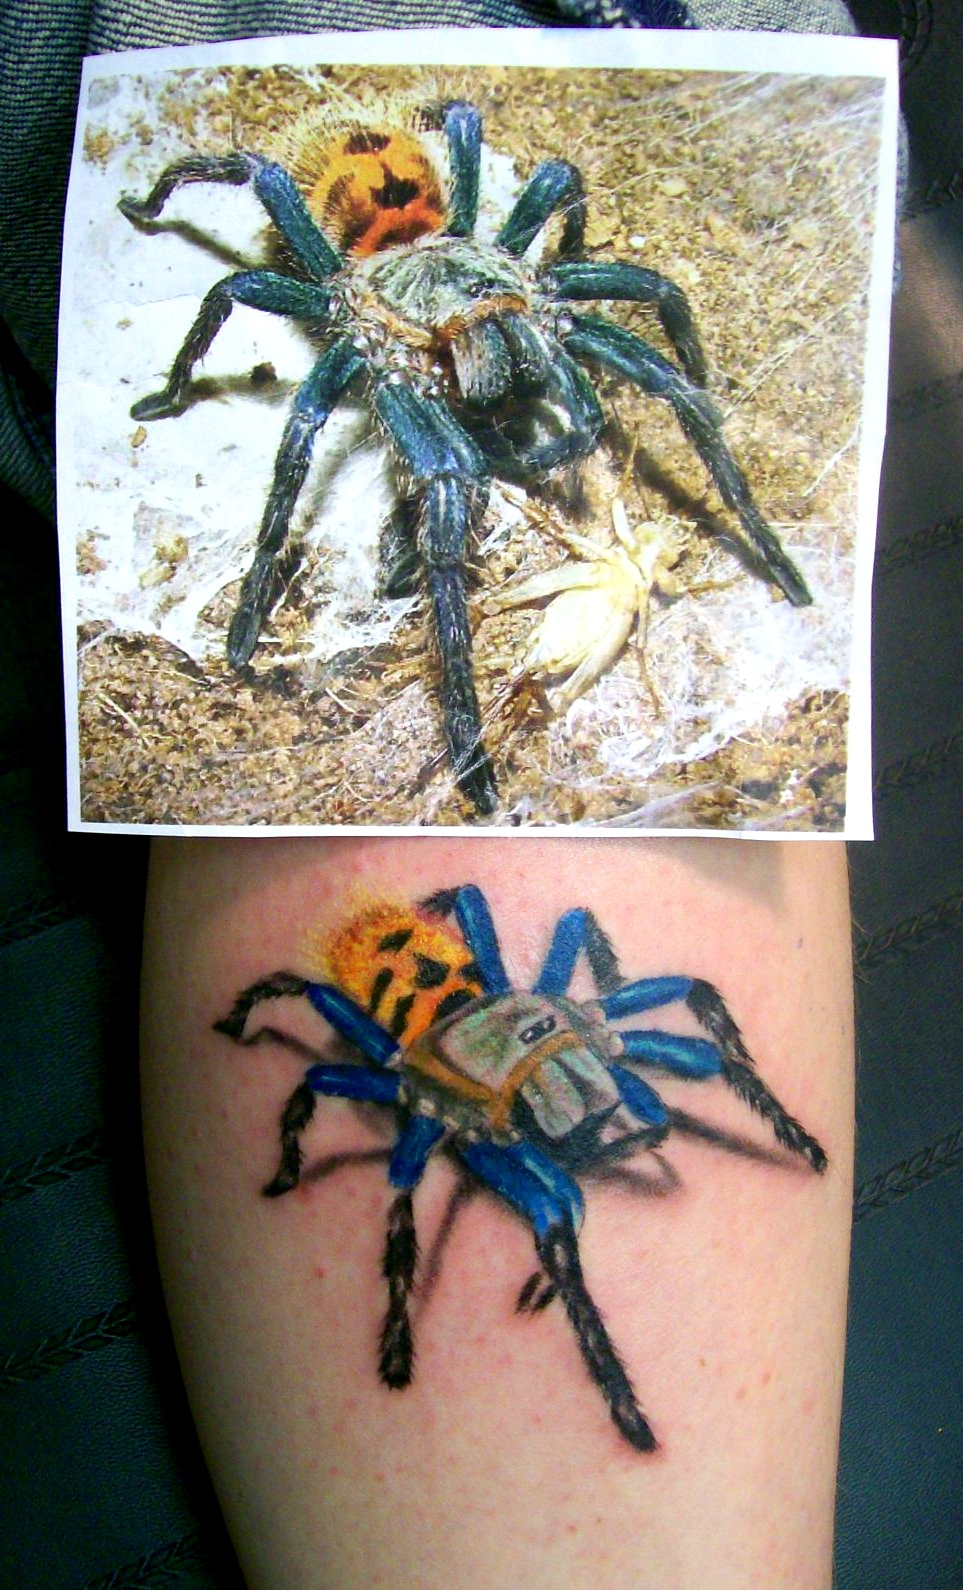 Cobalt Blue Tarantula Spider Tattoo by T